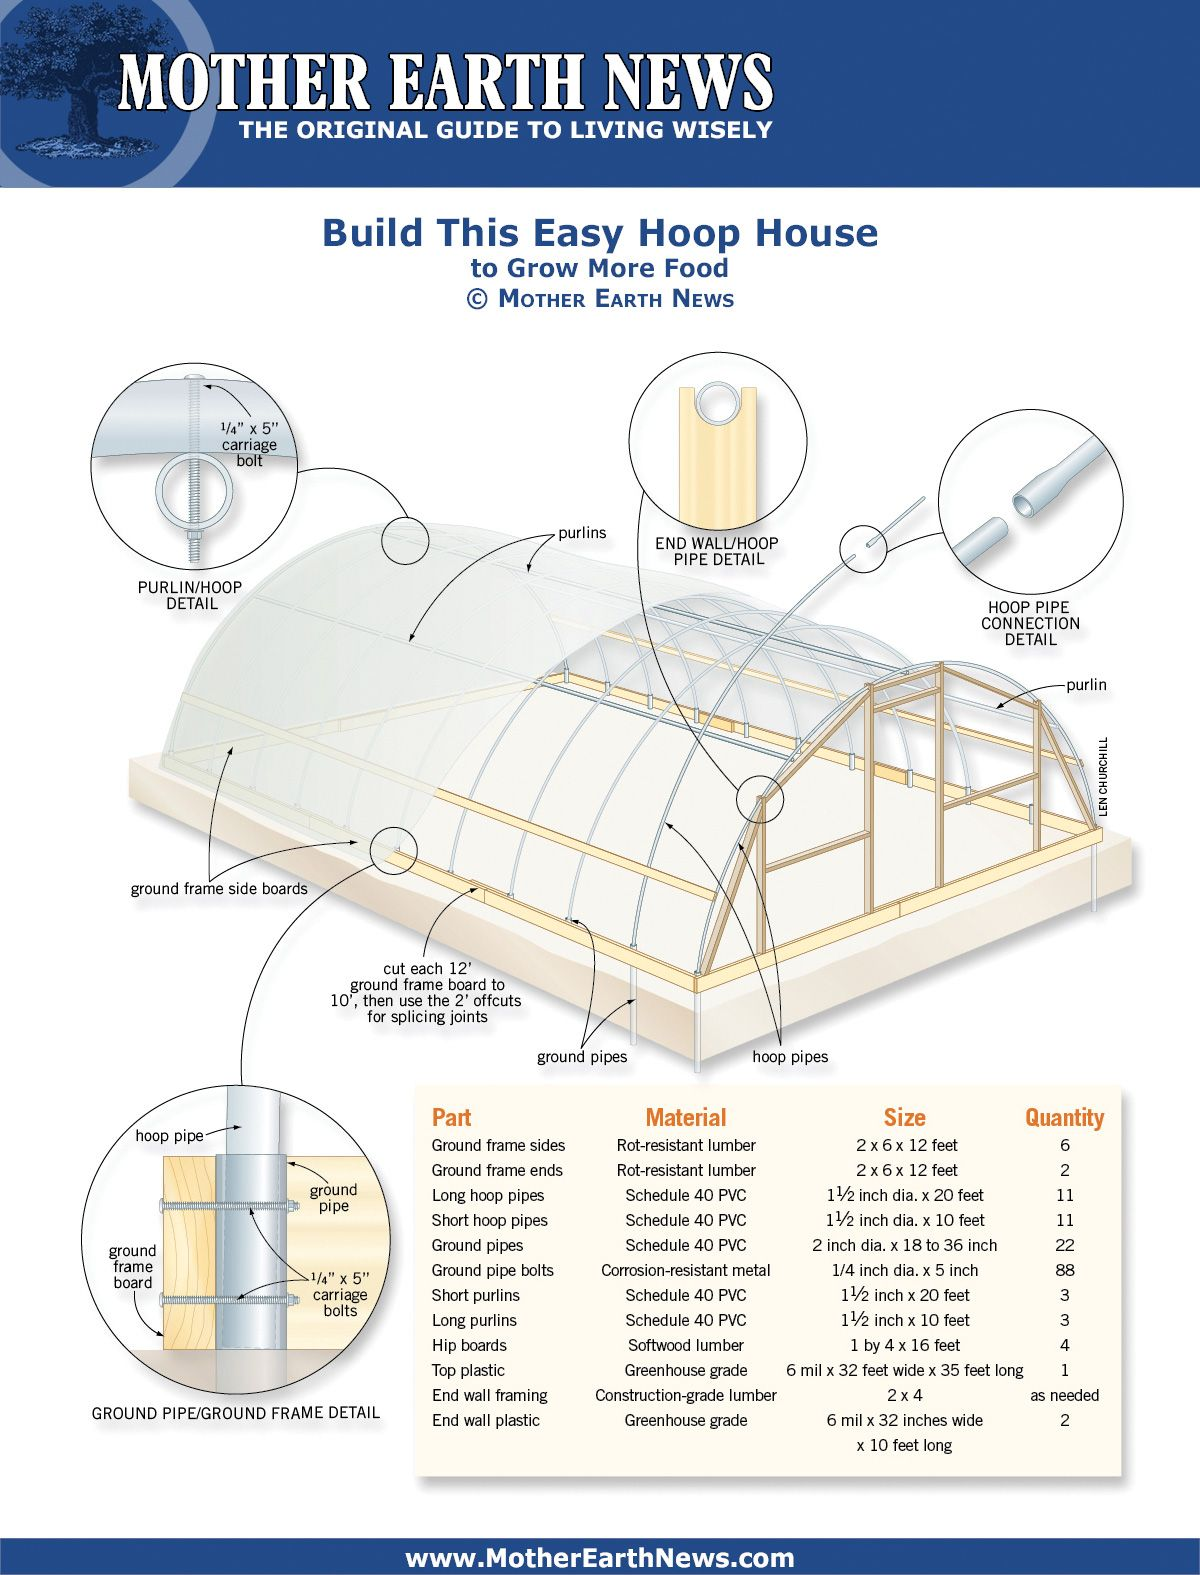 Build This Easy Hoop House I Would Like To Build This Using Polykedar Http Polykeder Com Which Would E Diy Greenhouse Greenhouse Plans Greenhouse Farming